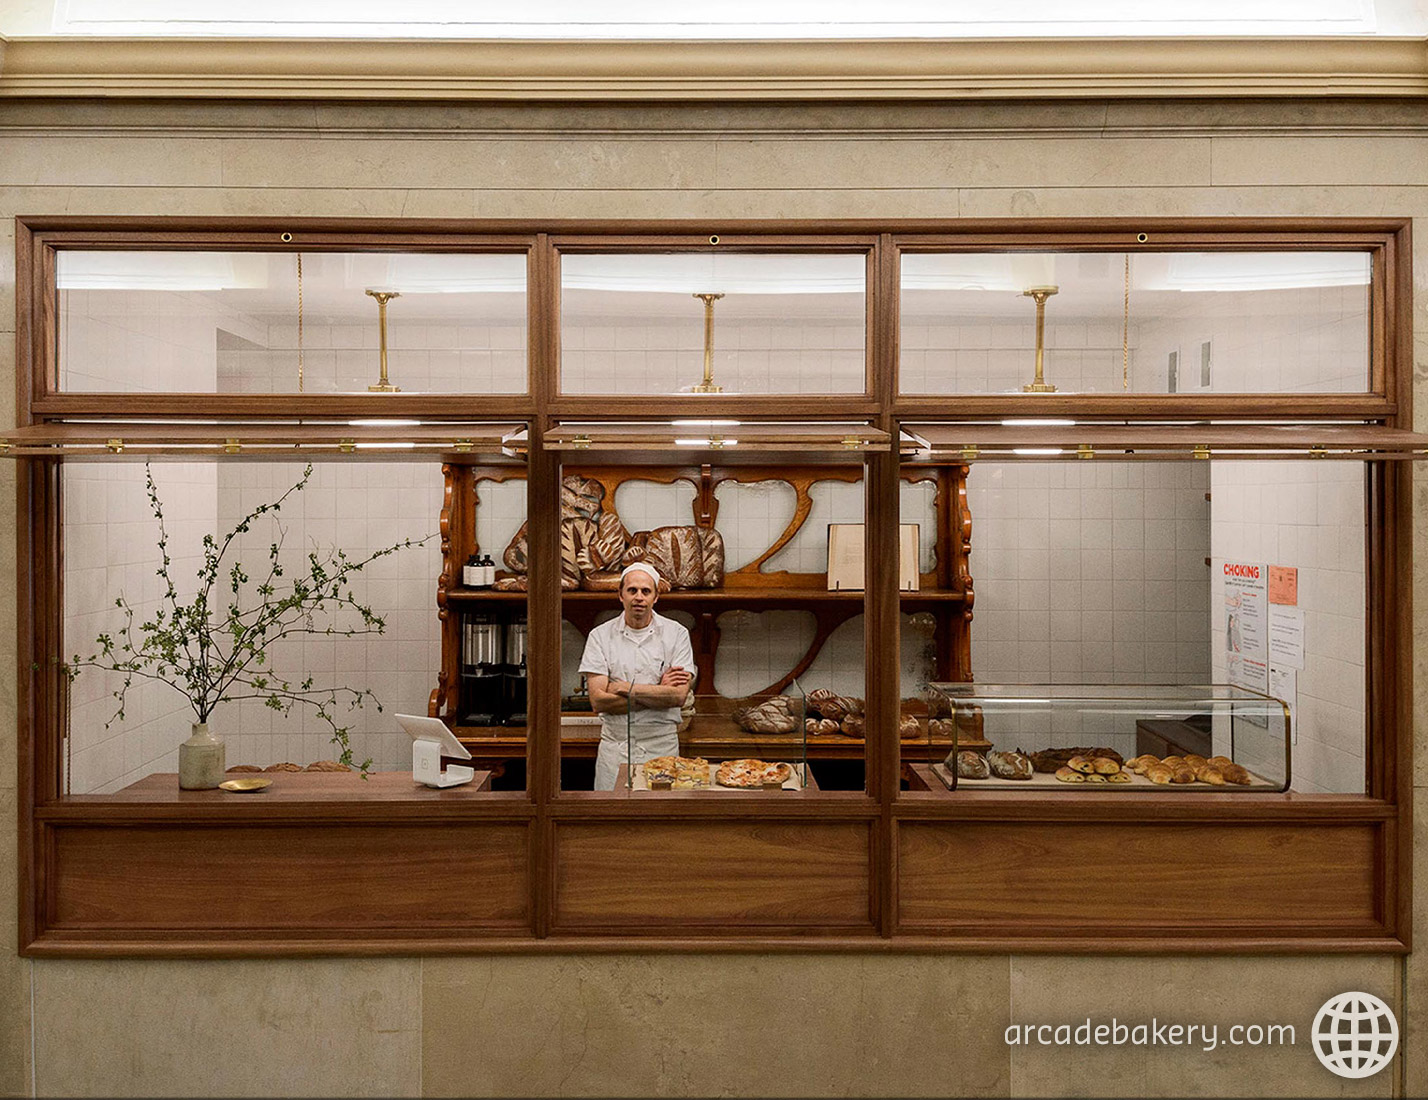 Hot bakery concepts in New York City